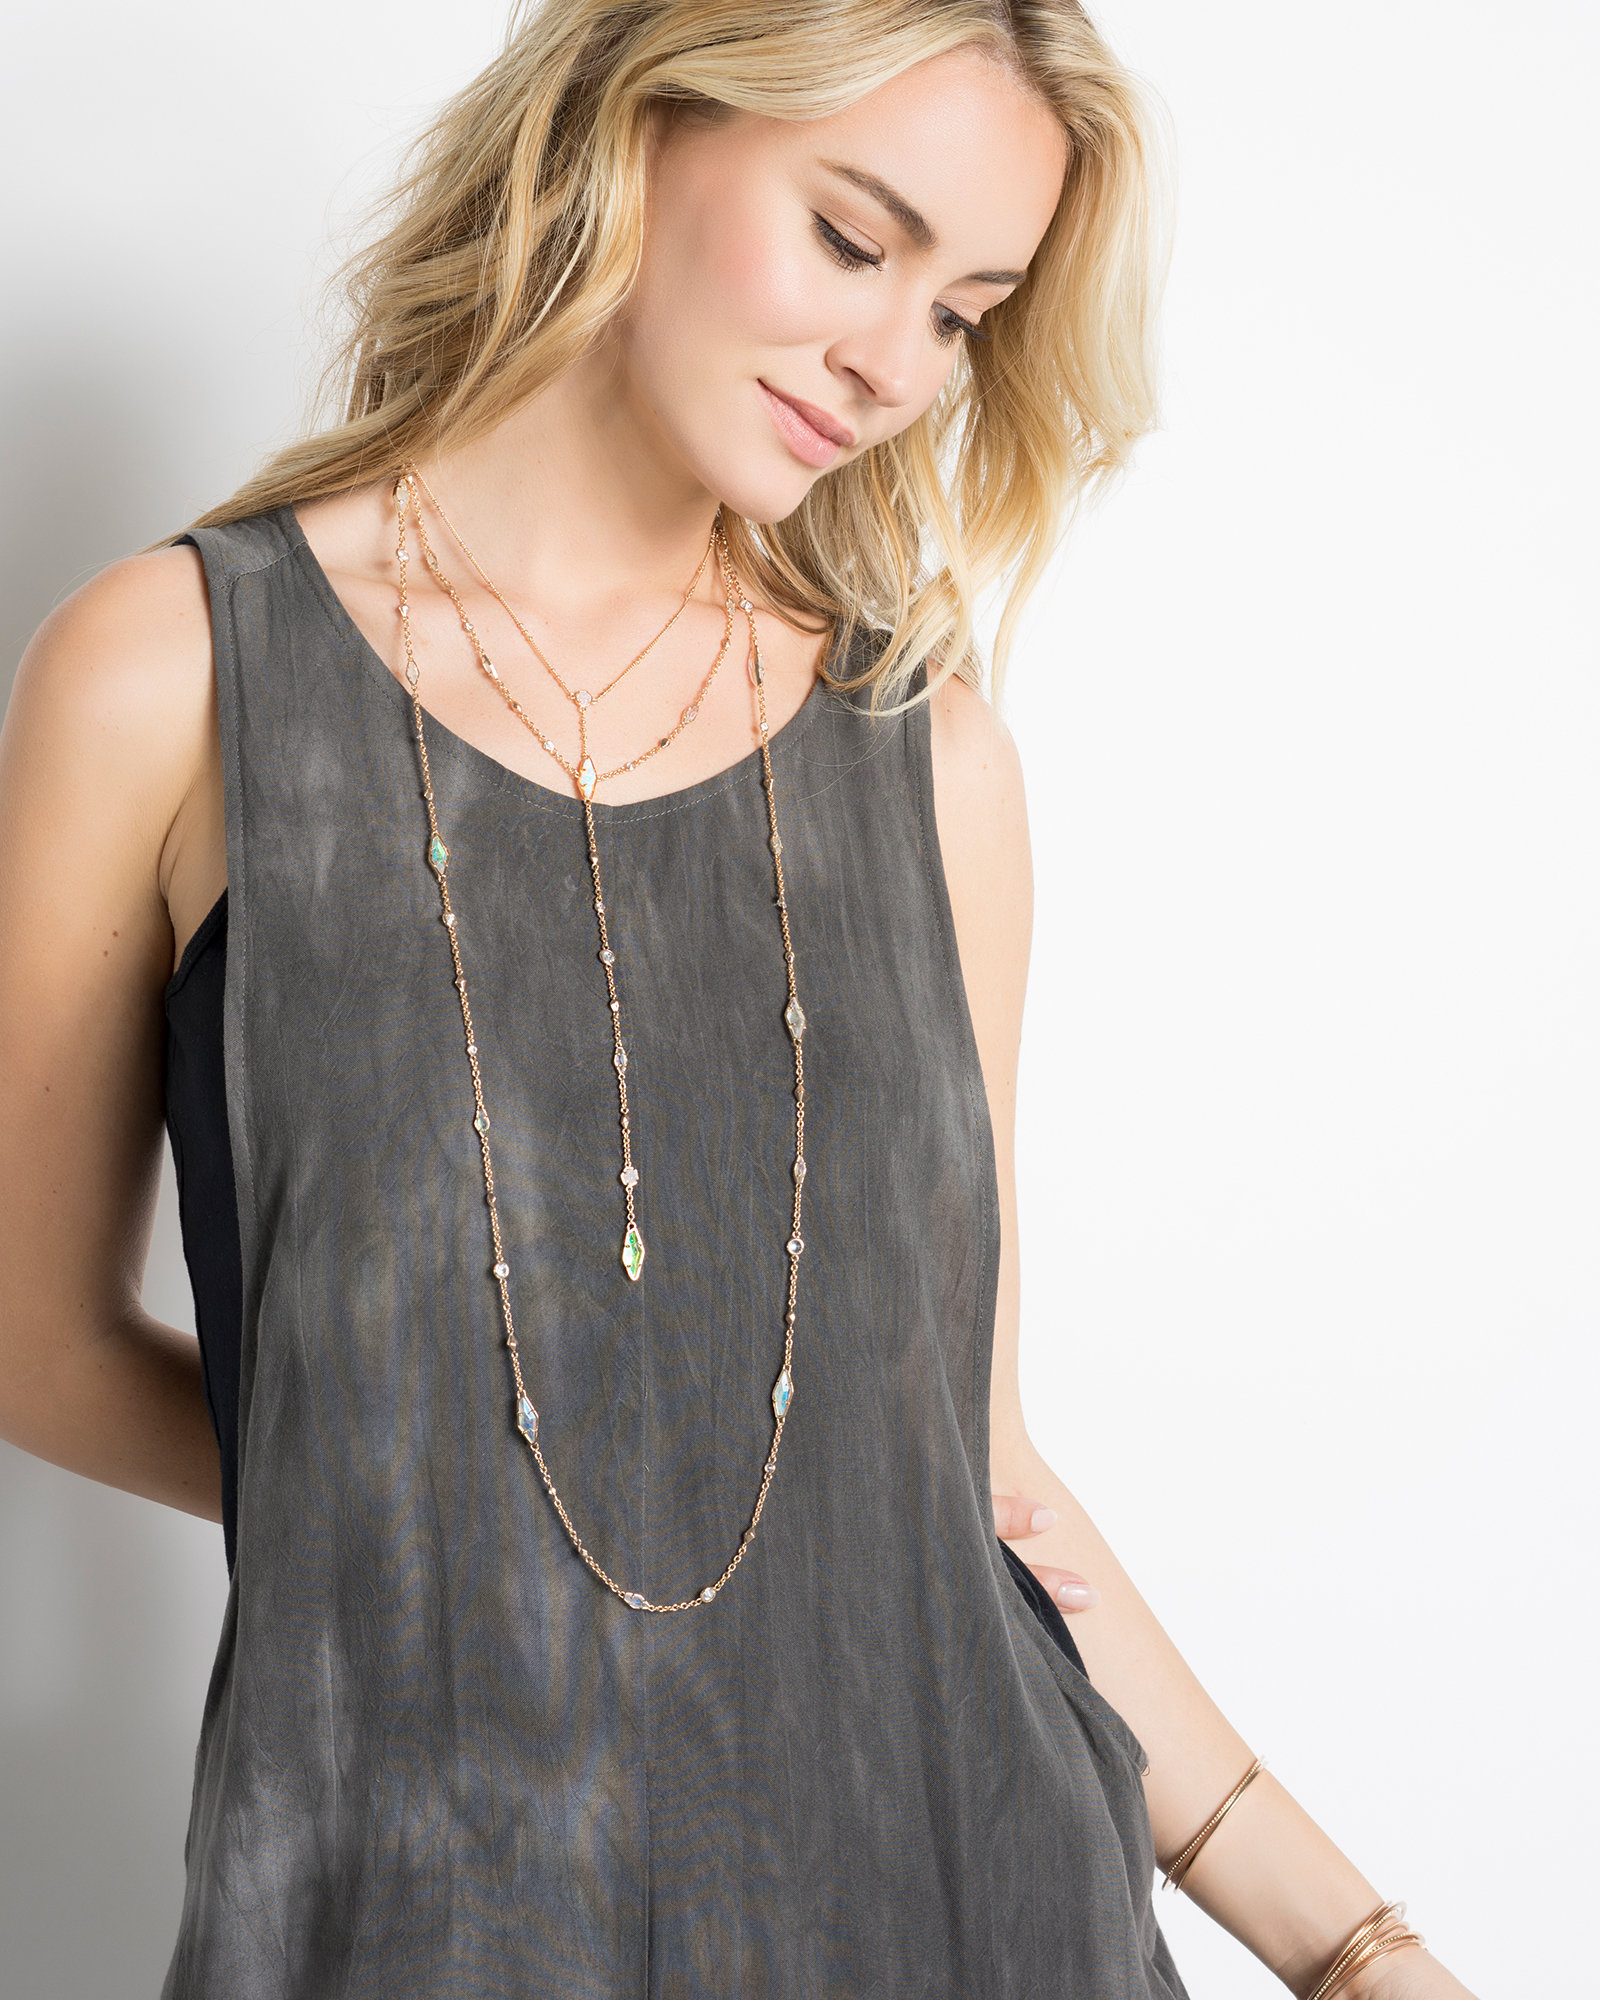 Zuly Long Necklace